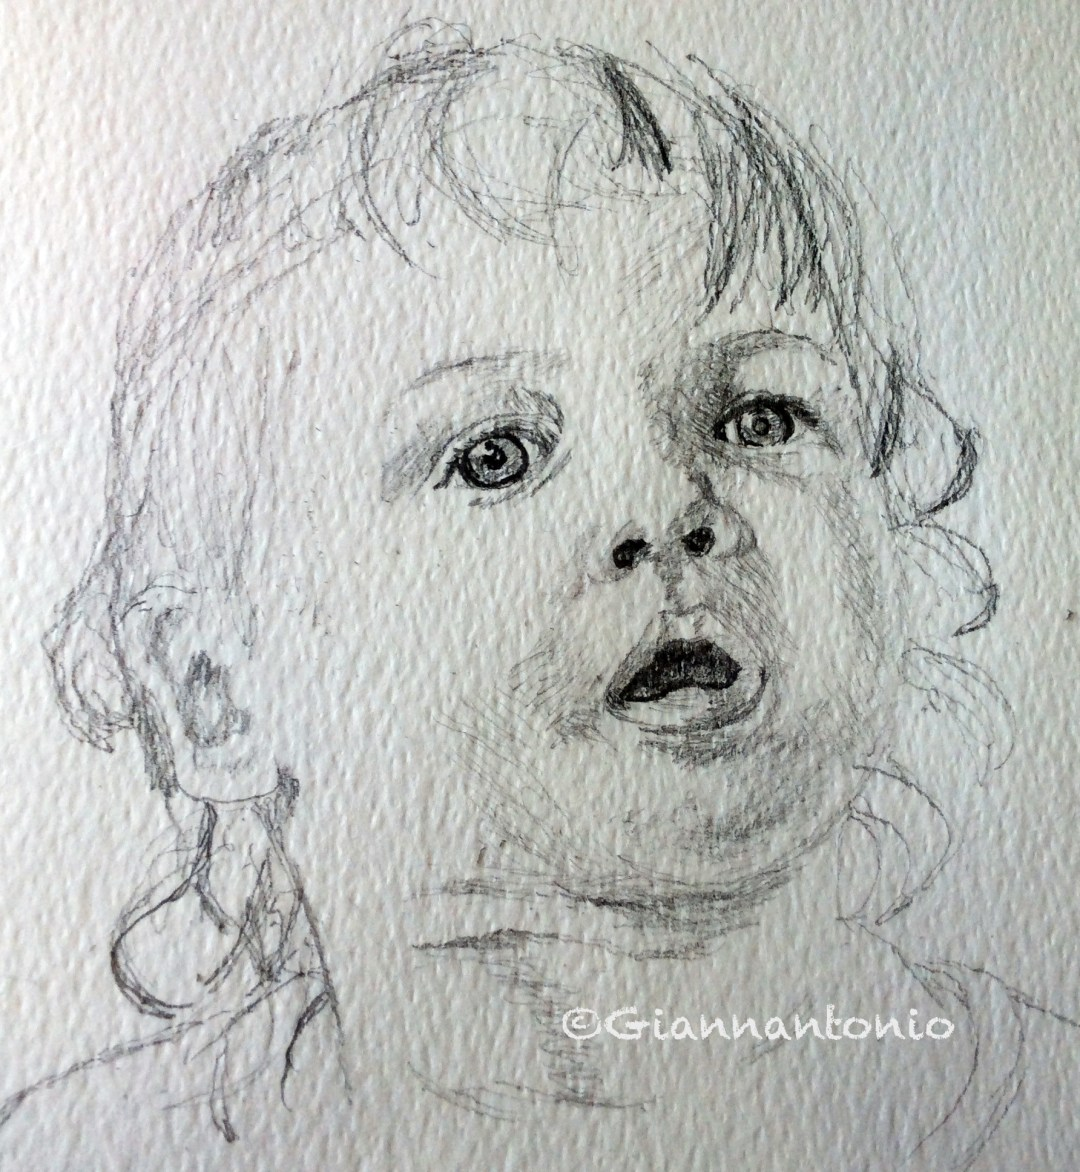 """Lady M at 17 Months, 7 x 5"""" pencil sketch on rough watercolor paper"""